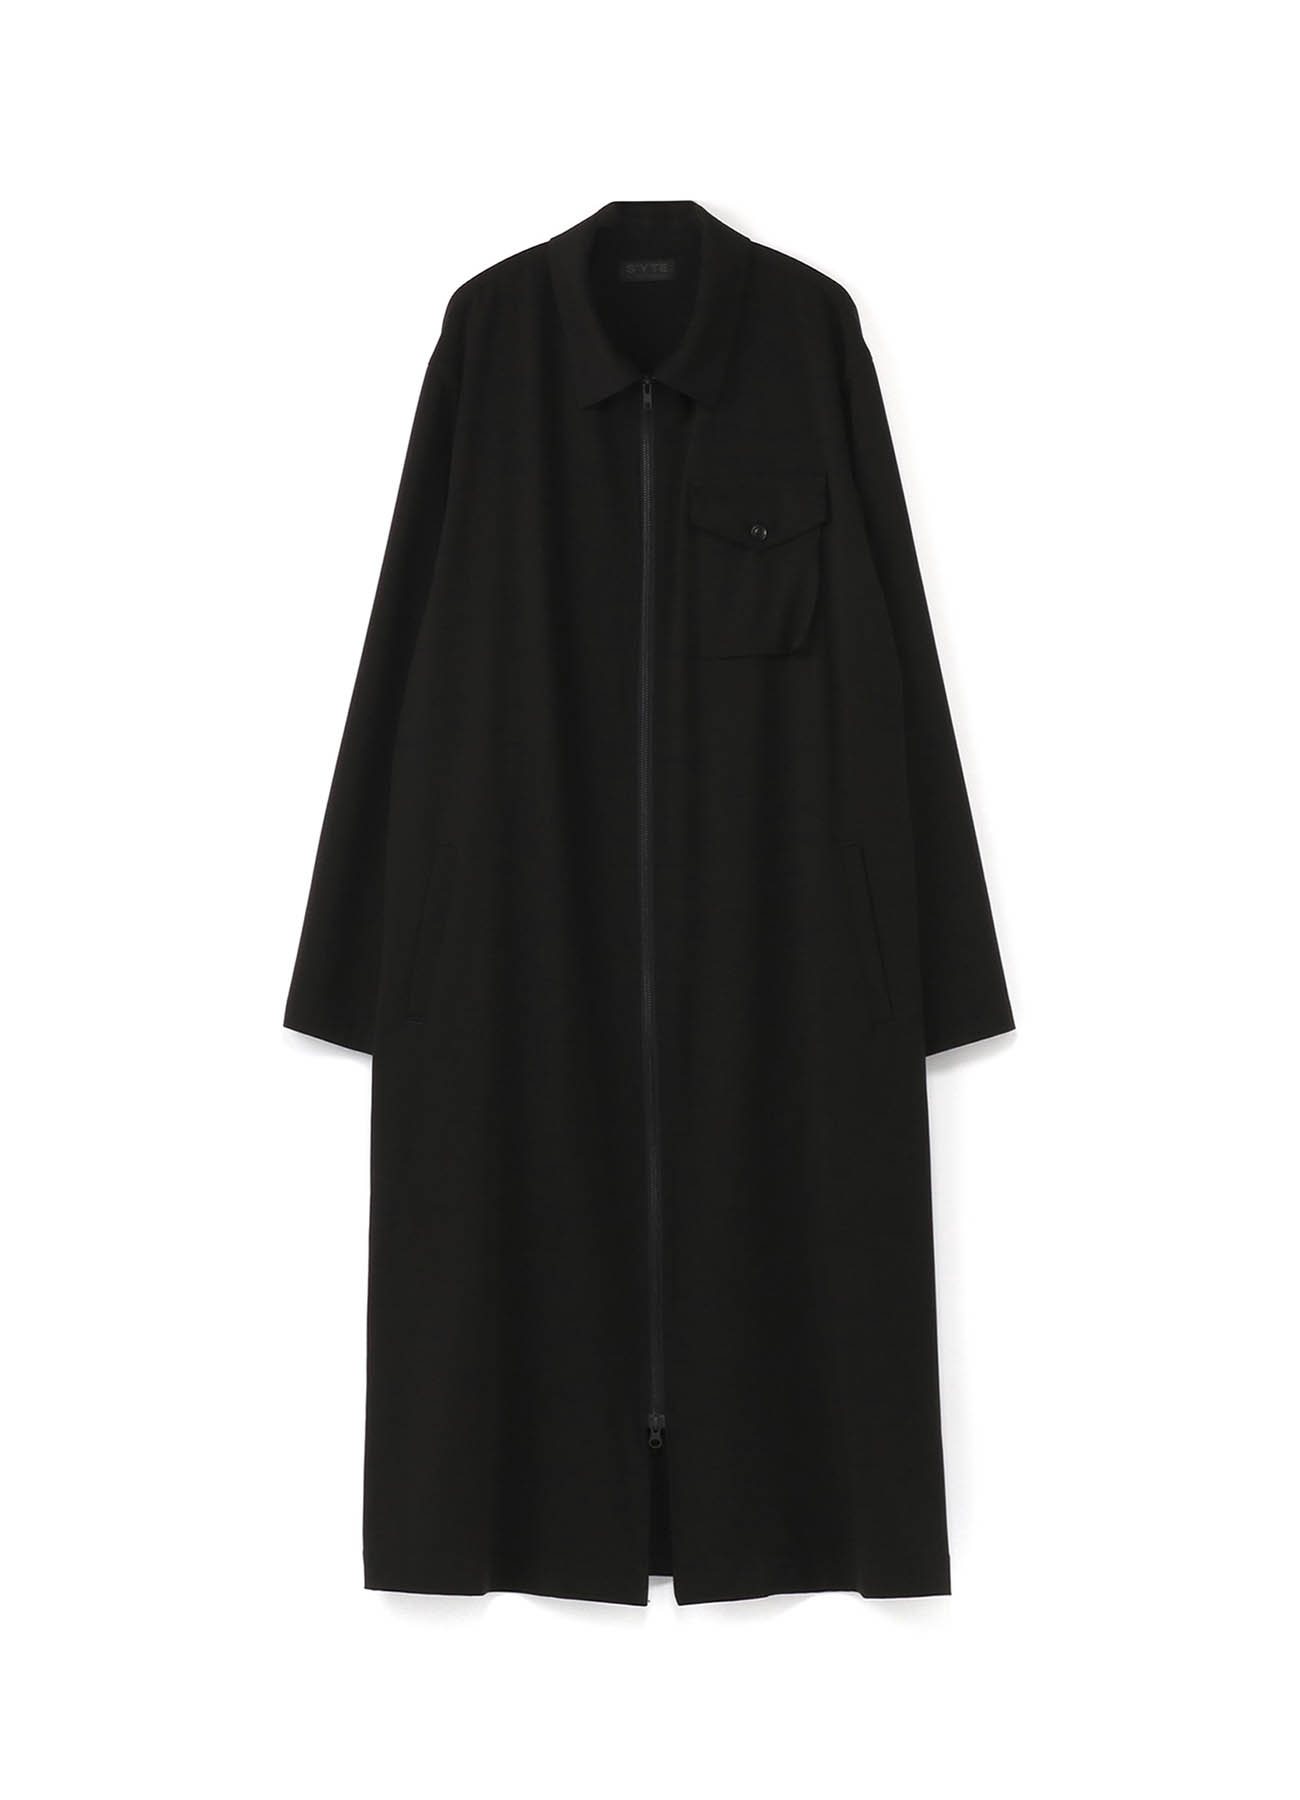 Pe/Rayon Gabardine Stretc Zipper Dress Coat